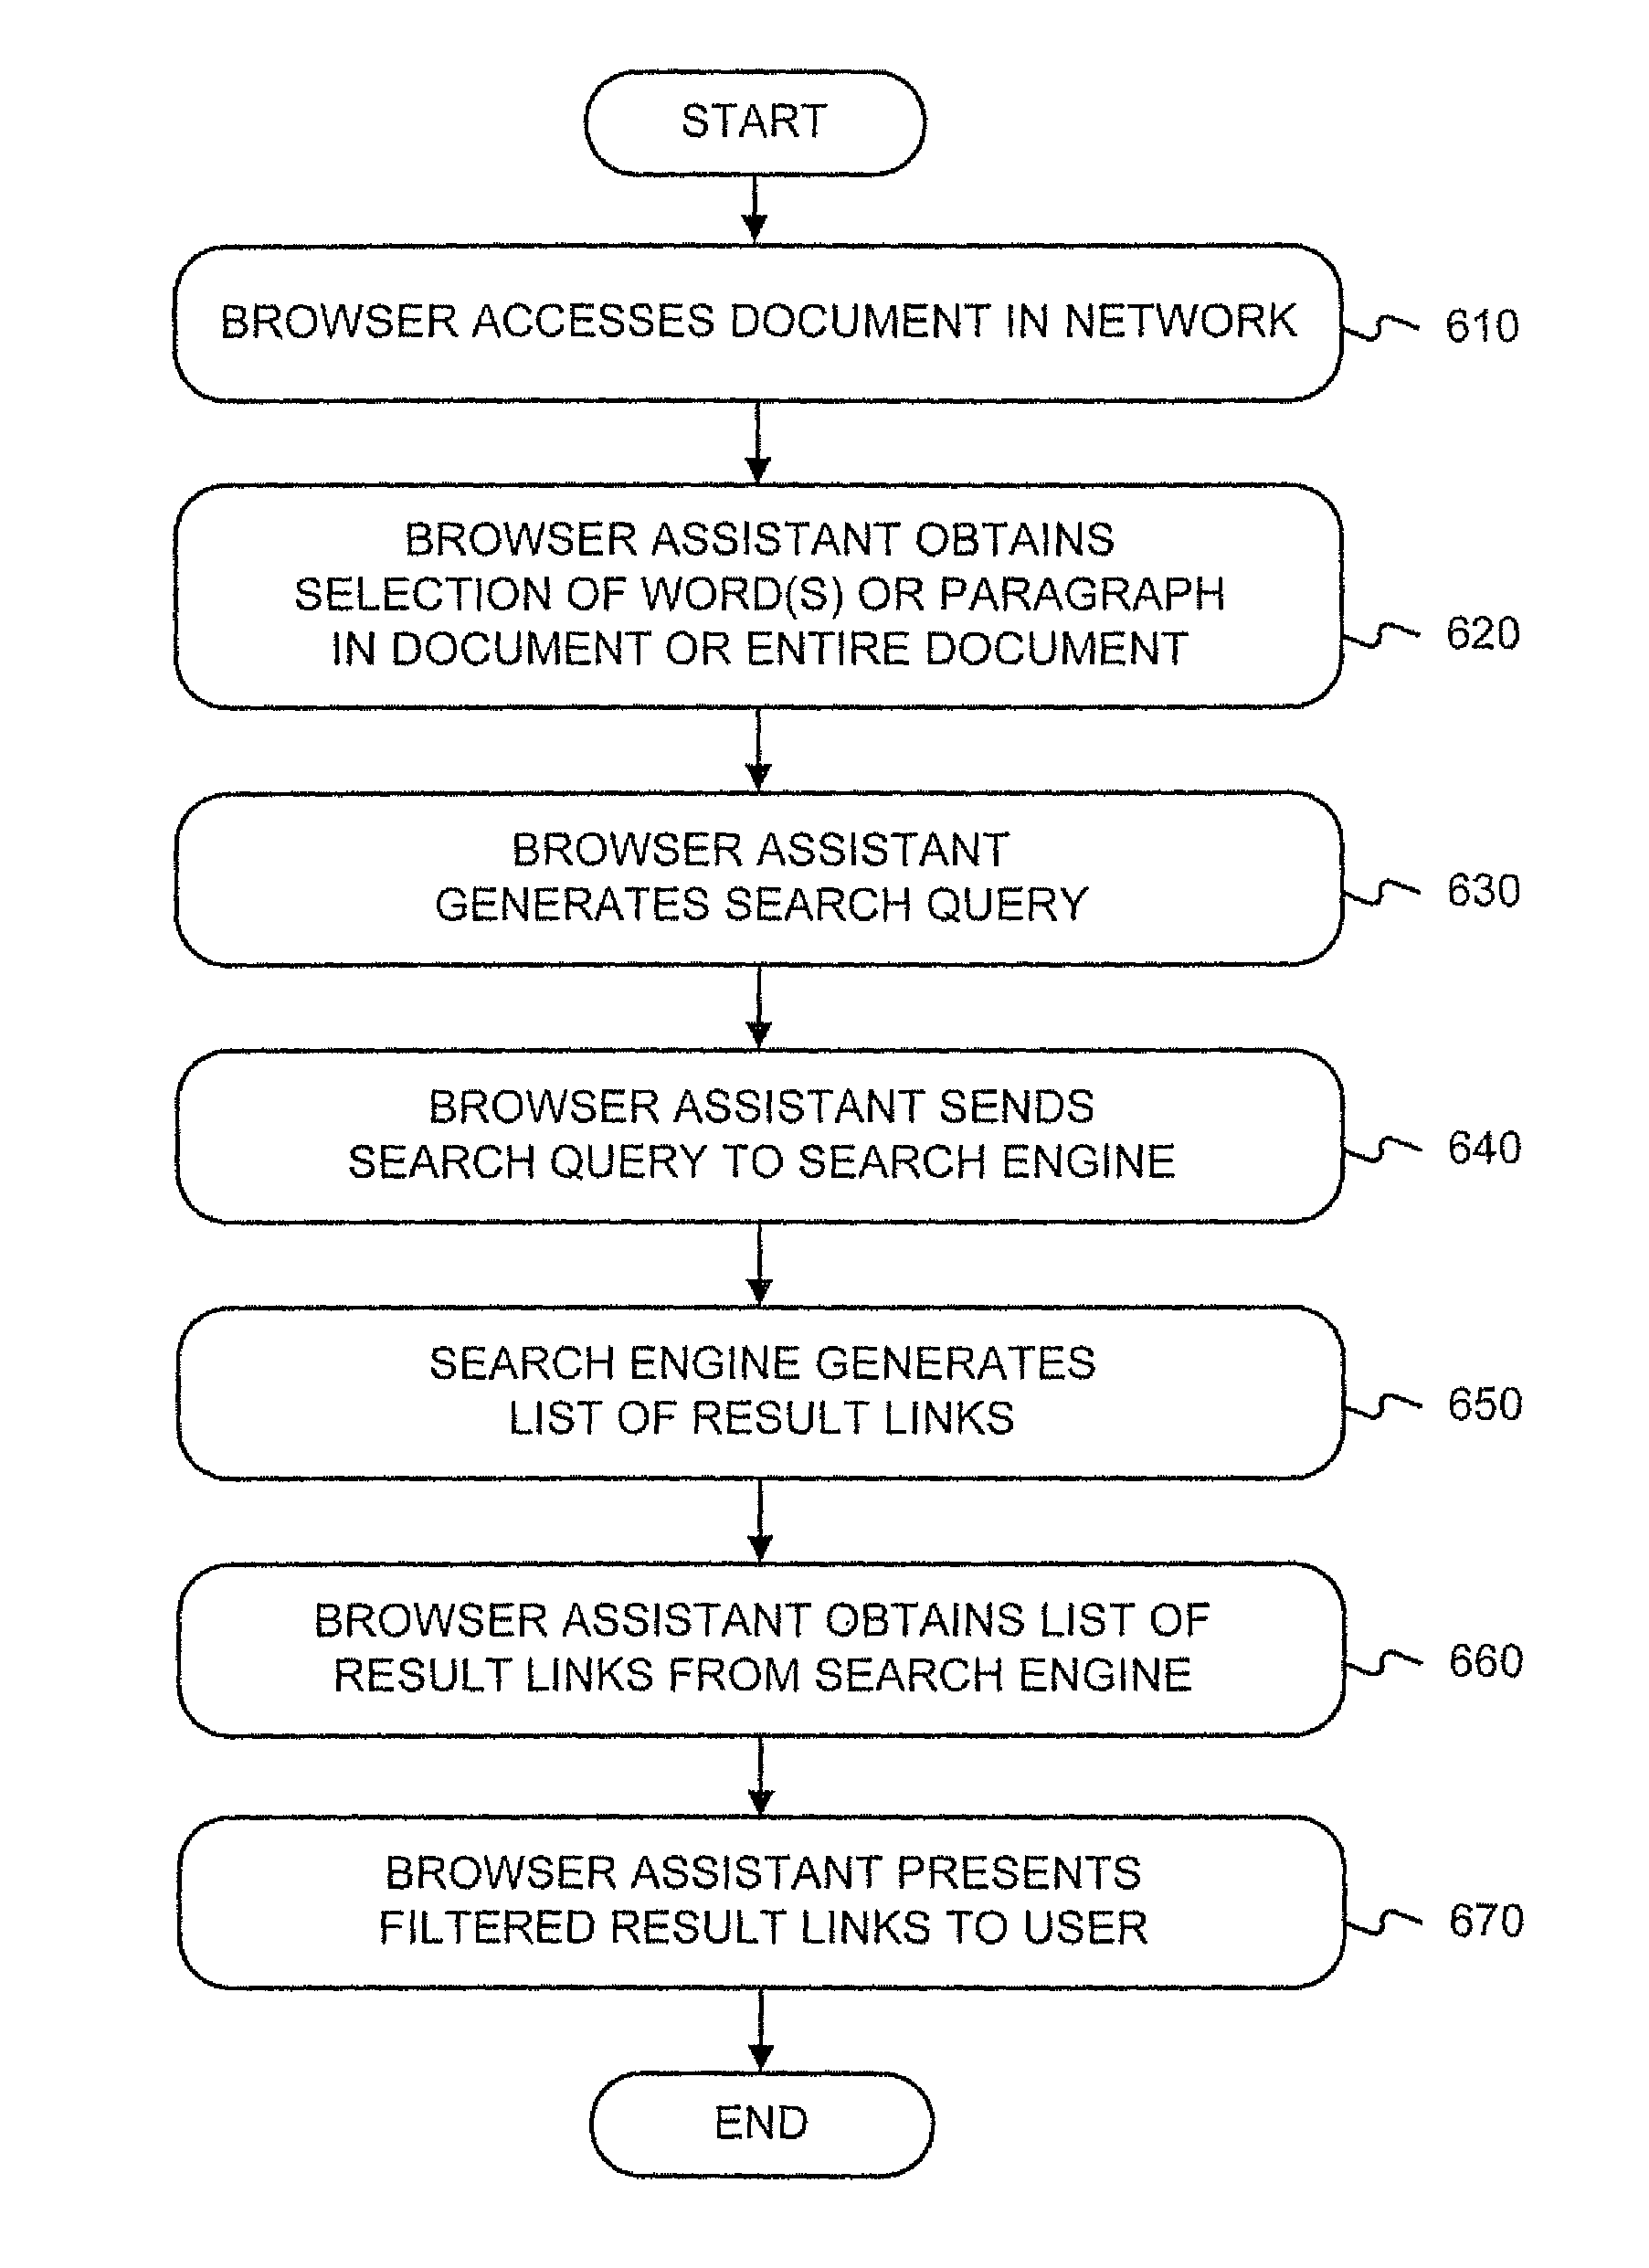 Google  patent by Mark Zuckerberg from 2013 for hypertext browser assistant - US8560564